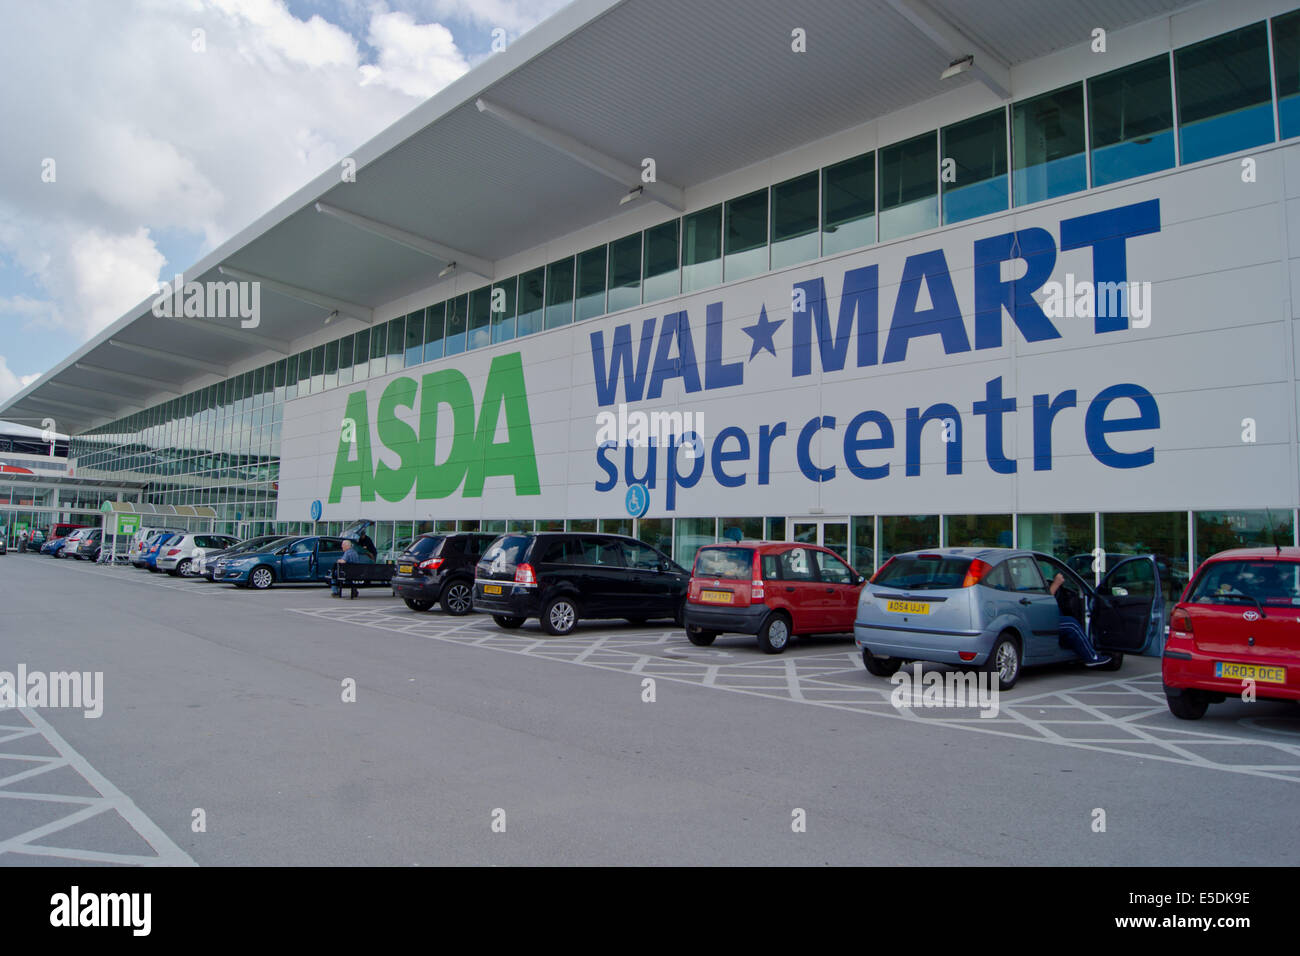 inventory accounting at wal mart stores essay Wal-mart-commissioned study shows rfid including a new pi inventory adjustment tool, in eight wal-mart eight wal-mart stores without rfid.